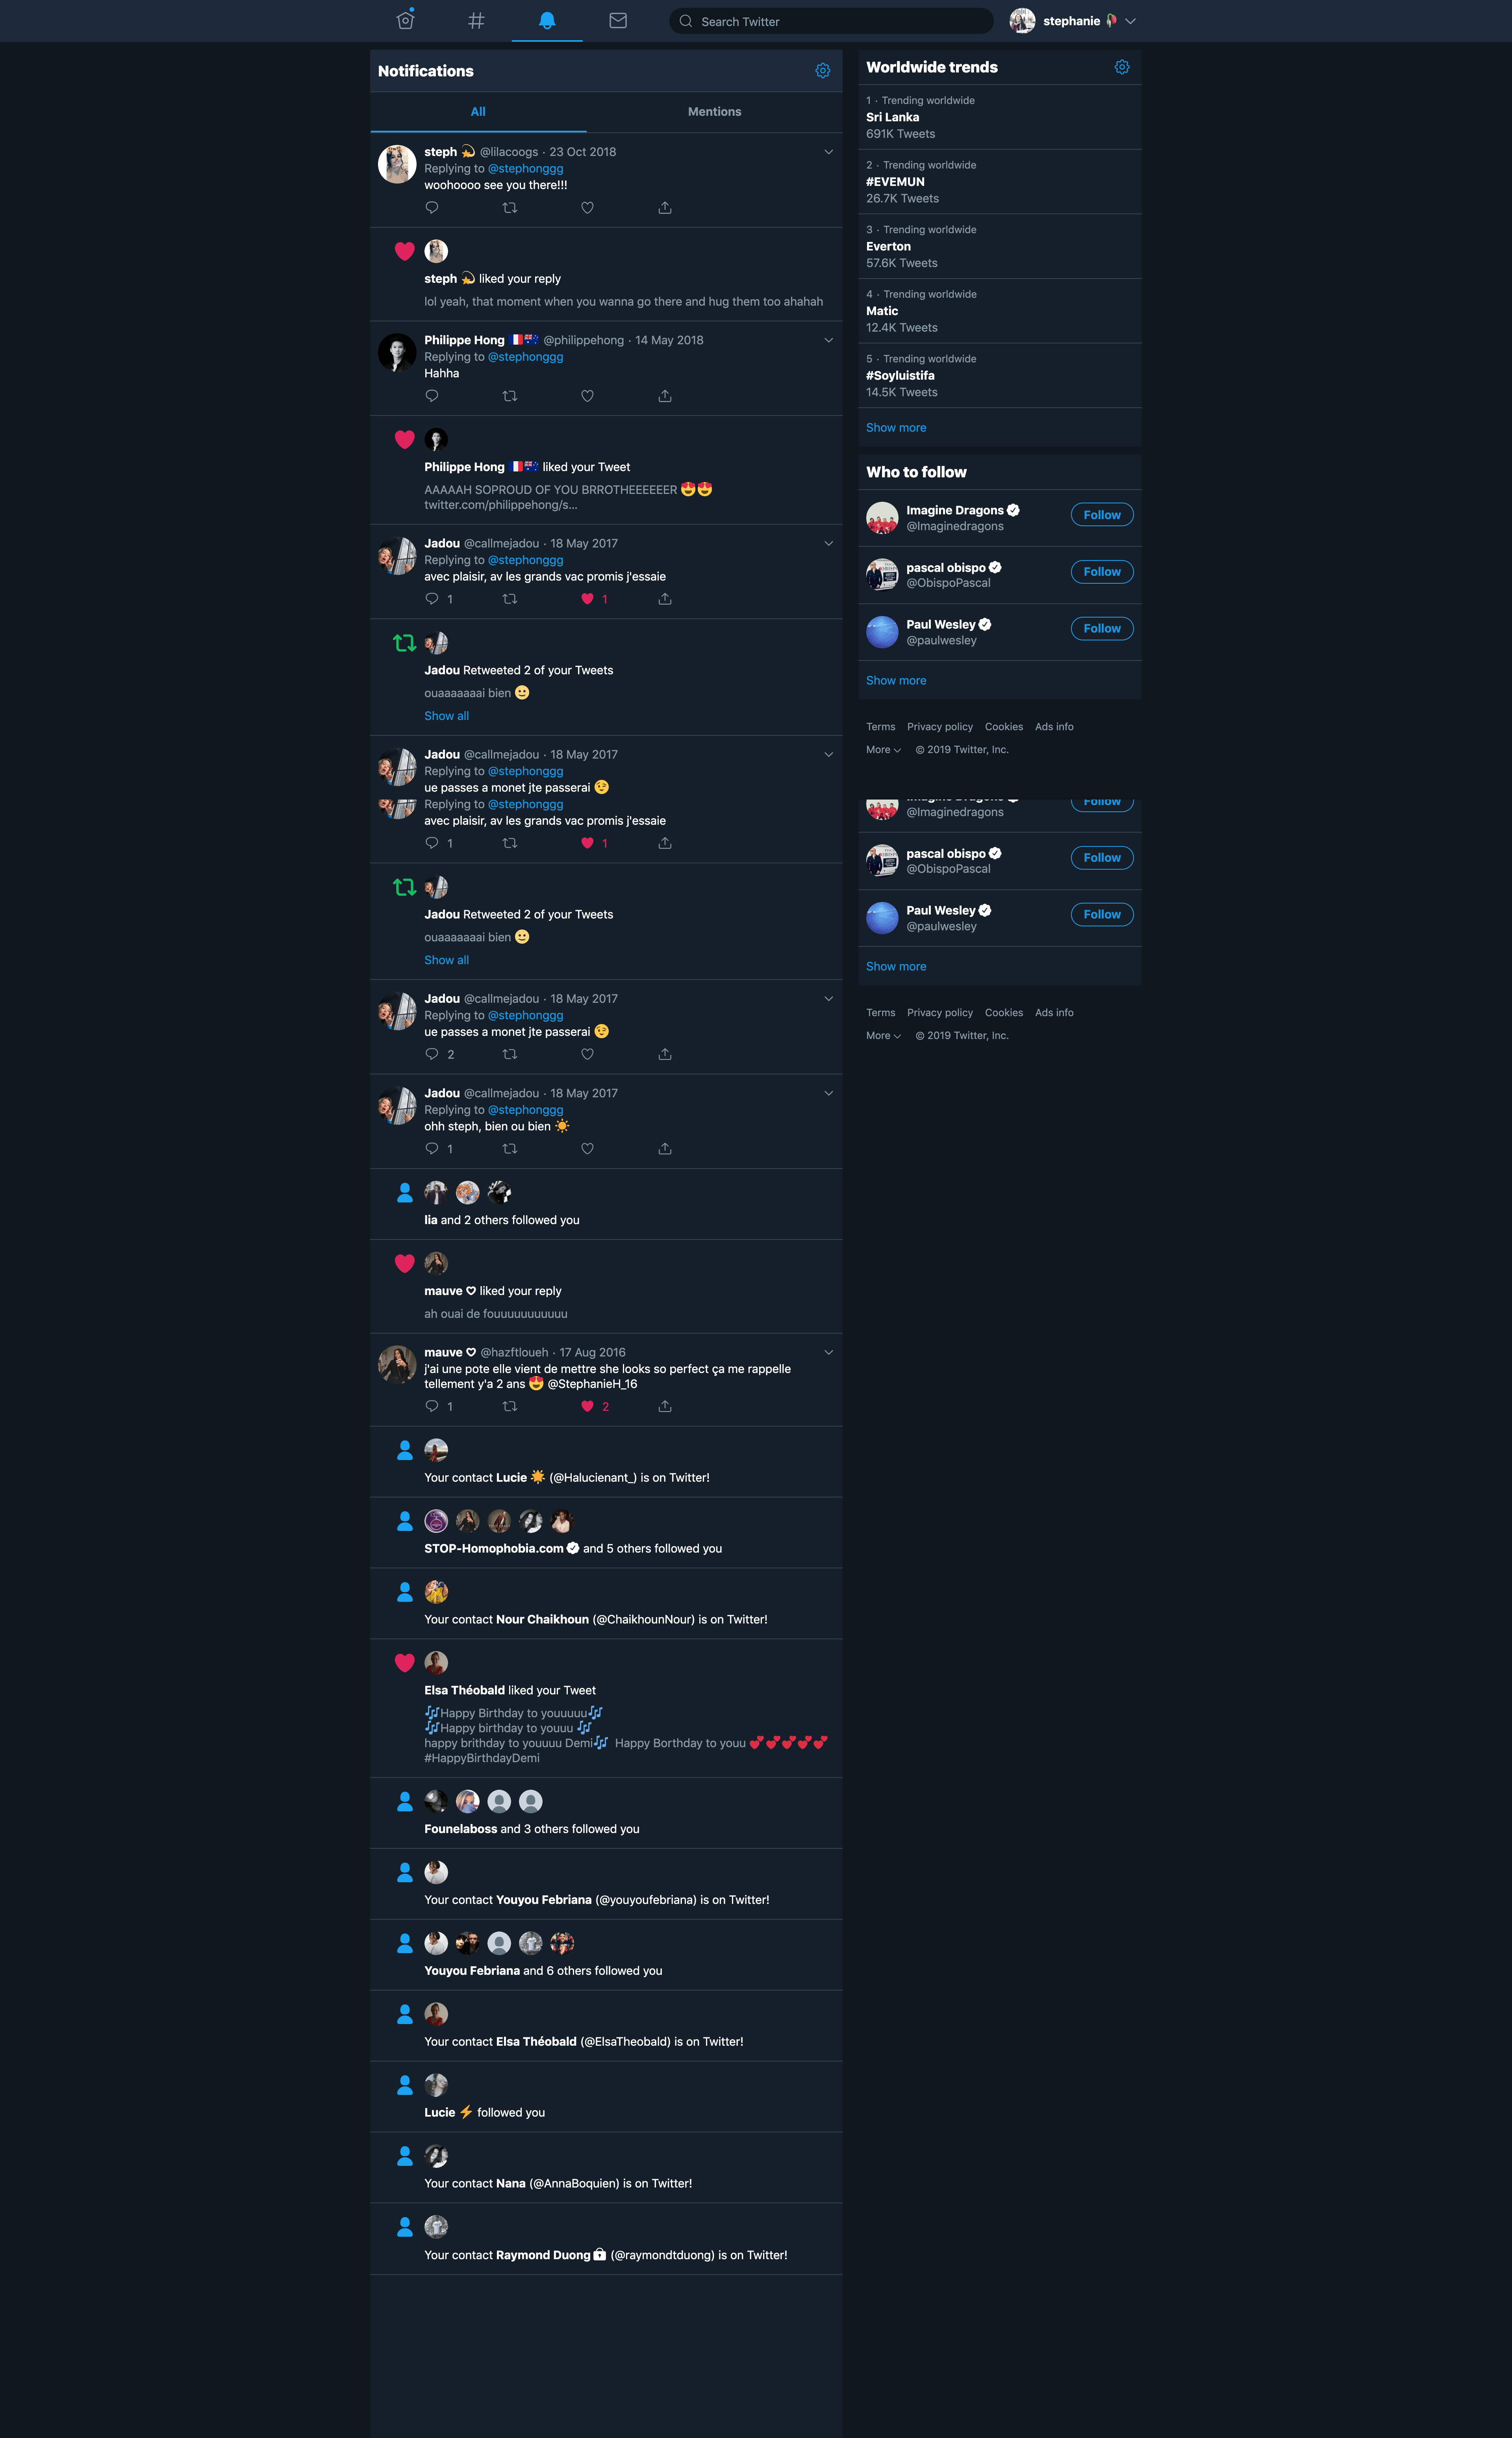 Notifications/Dark Mode by Twitter from UIGarage